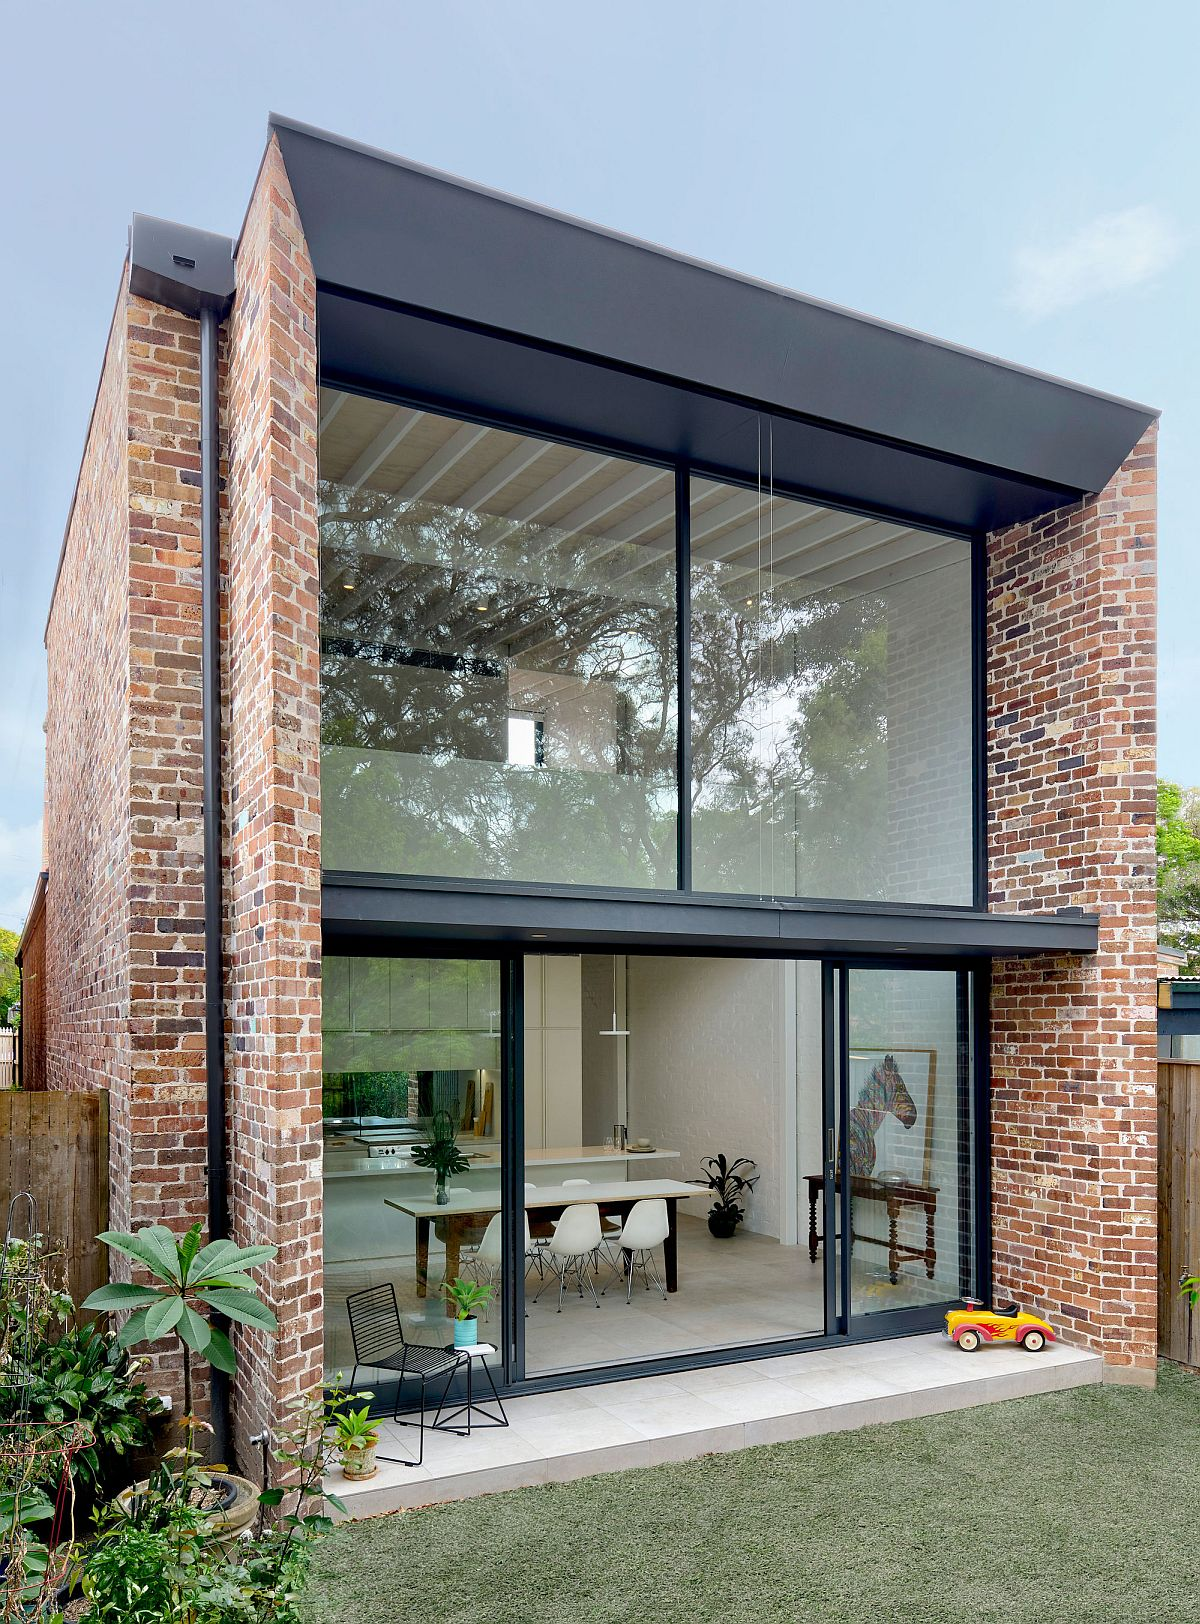 Modern extension to a classic federation-style home in Petersham, Sydney utilizes brick and glass